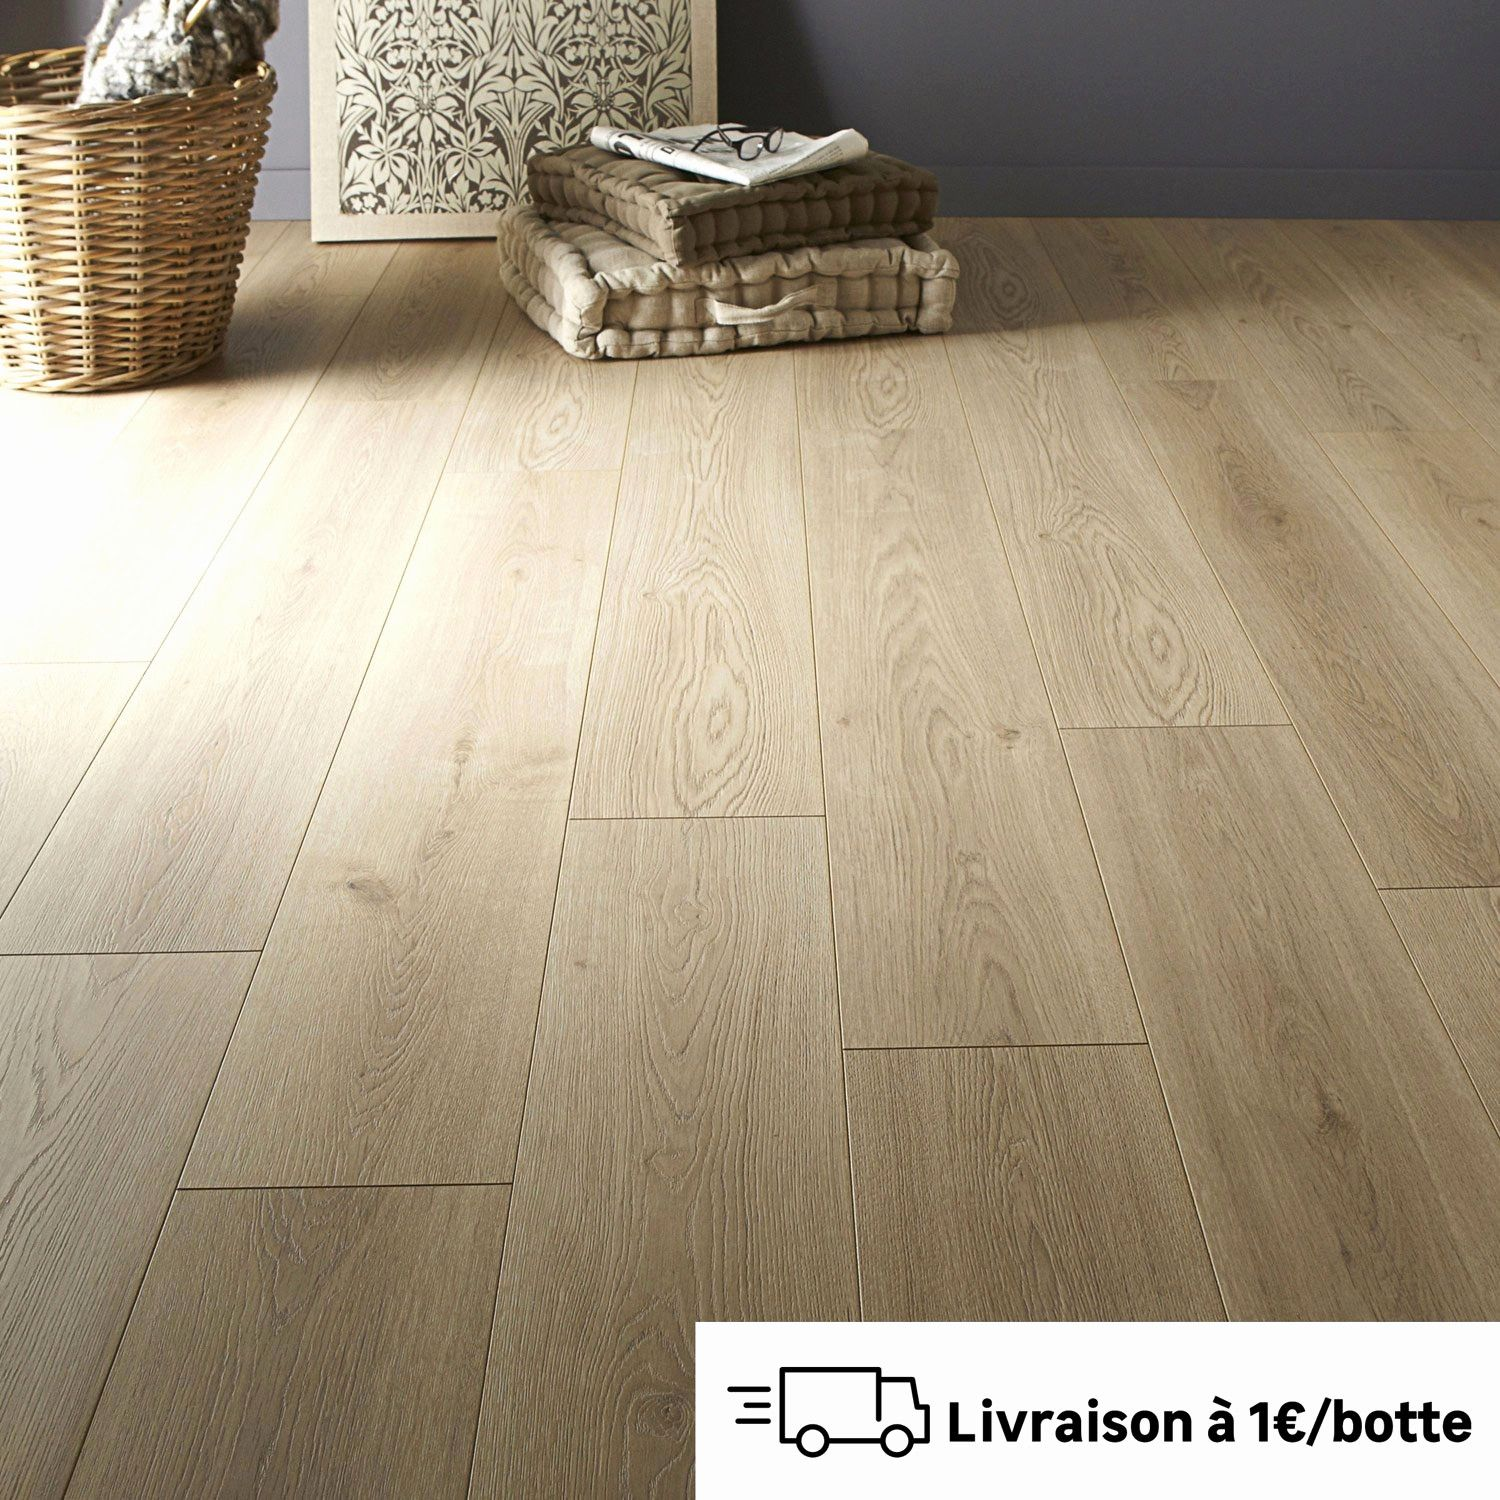 Awesome Parquet Flottant Leroy Merlin Promotion Bedroom Wooden Floor Wooden Floor Tiles Light Wooden Floor